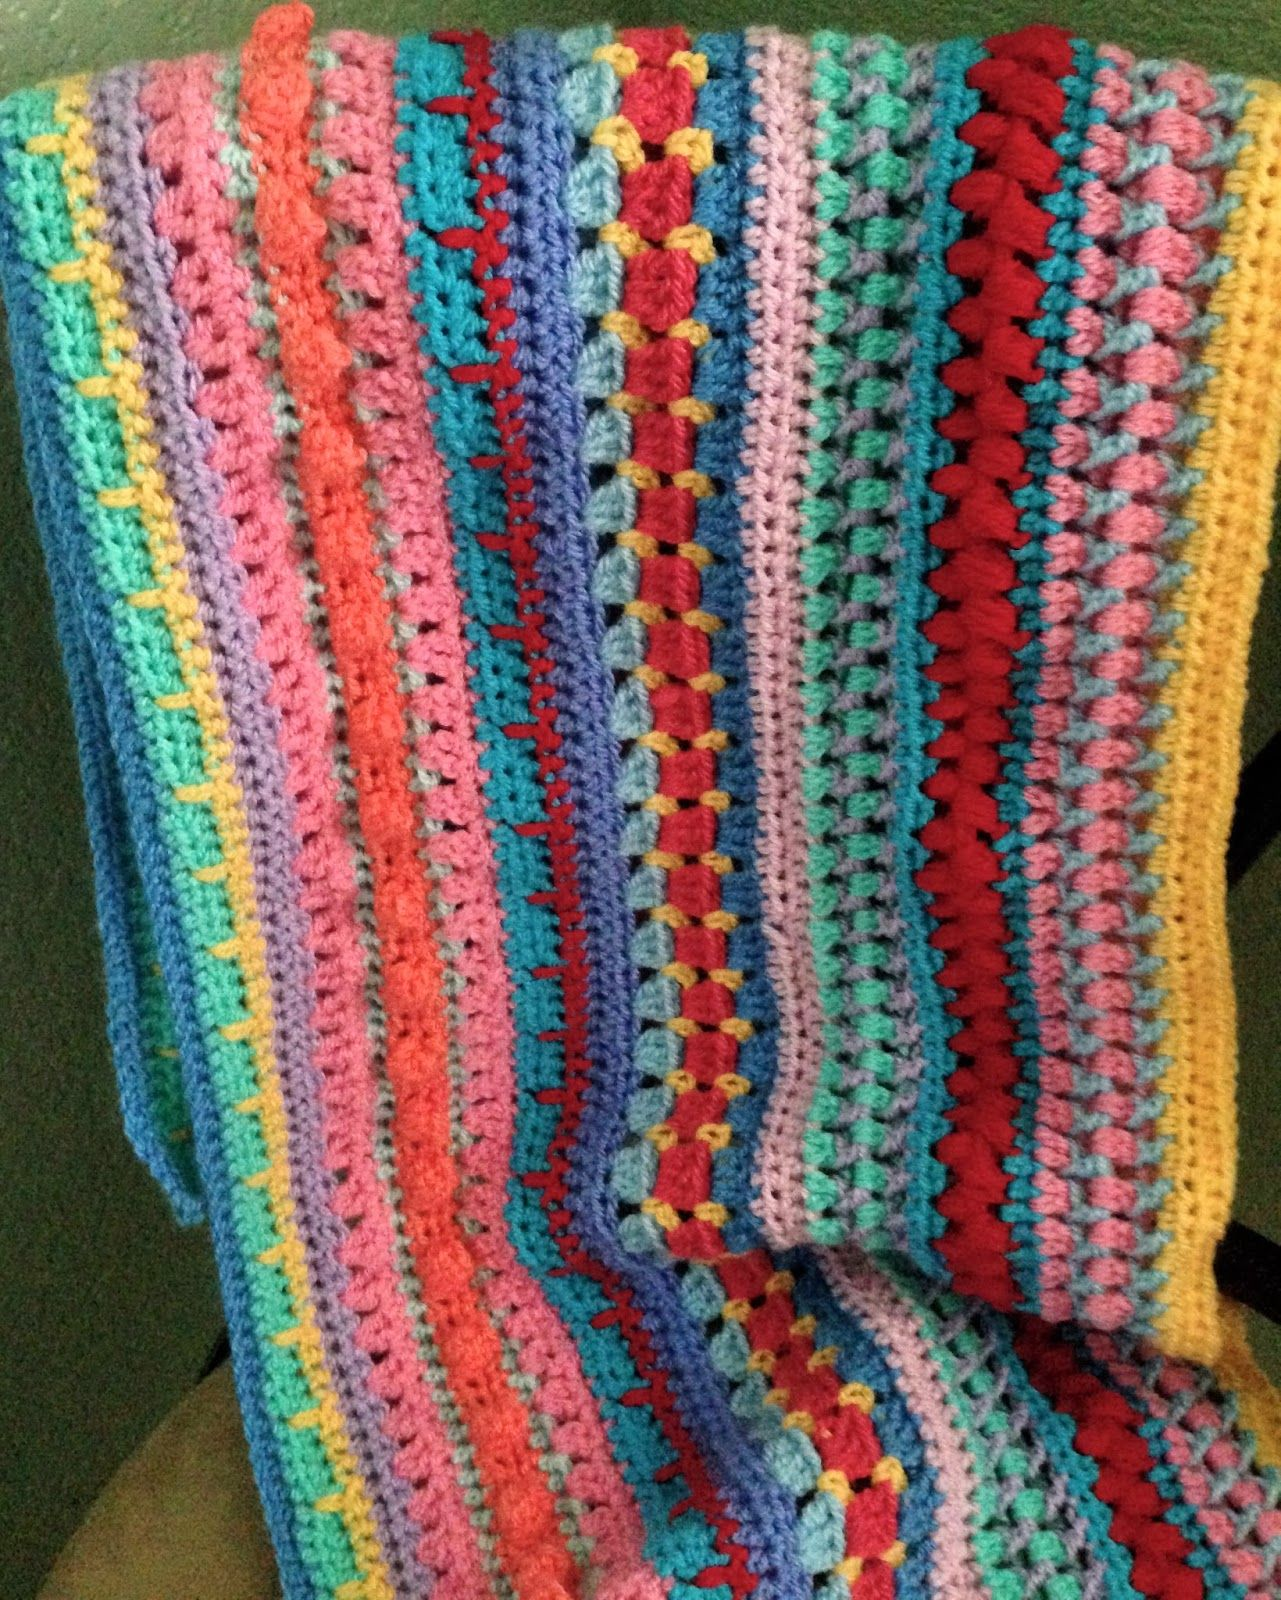 Multi-stitch Striped Blanket, free pattern by Lynne Samaan of Da's Crochet Connection. This one has some stitches I haven't seen before . . .   ღTrish W ~ http://www.pinterest.com/trishw/  . . .  #afghan #throw #mixed_stitch